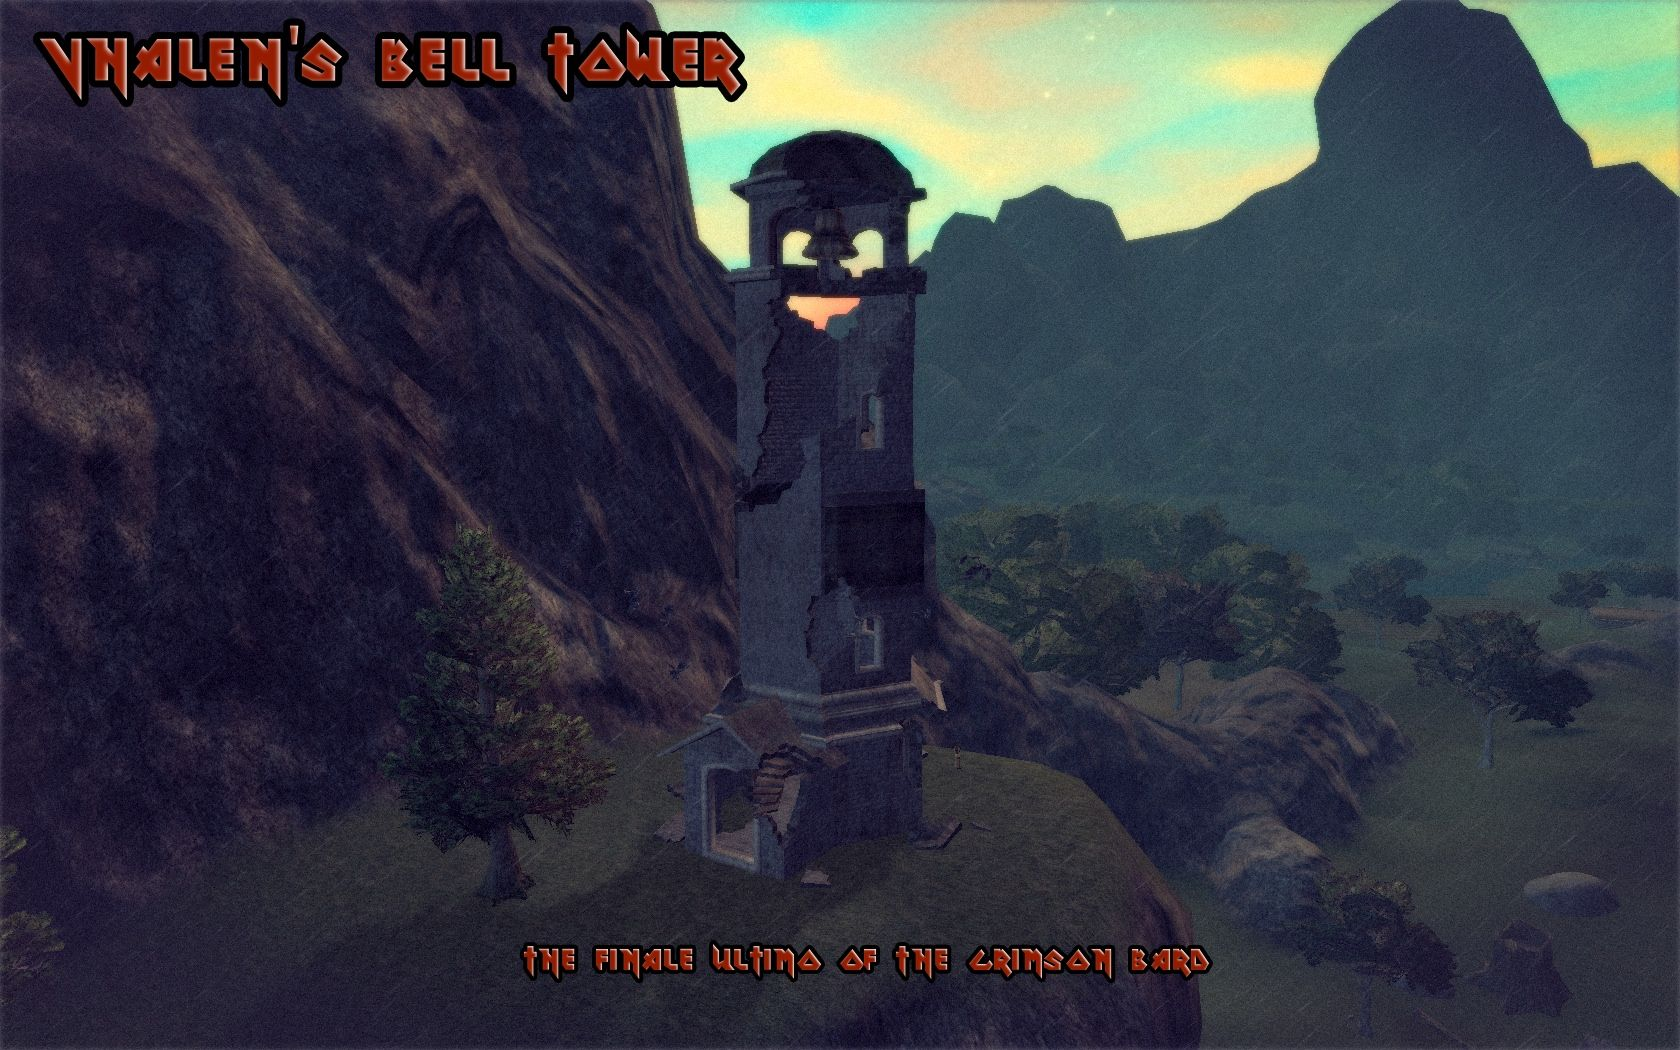 Found in the world of everquest ii vhalens bell tower